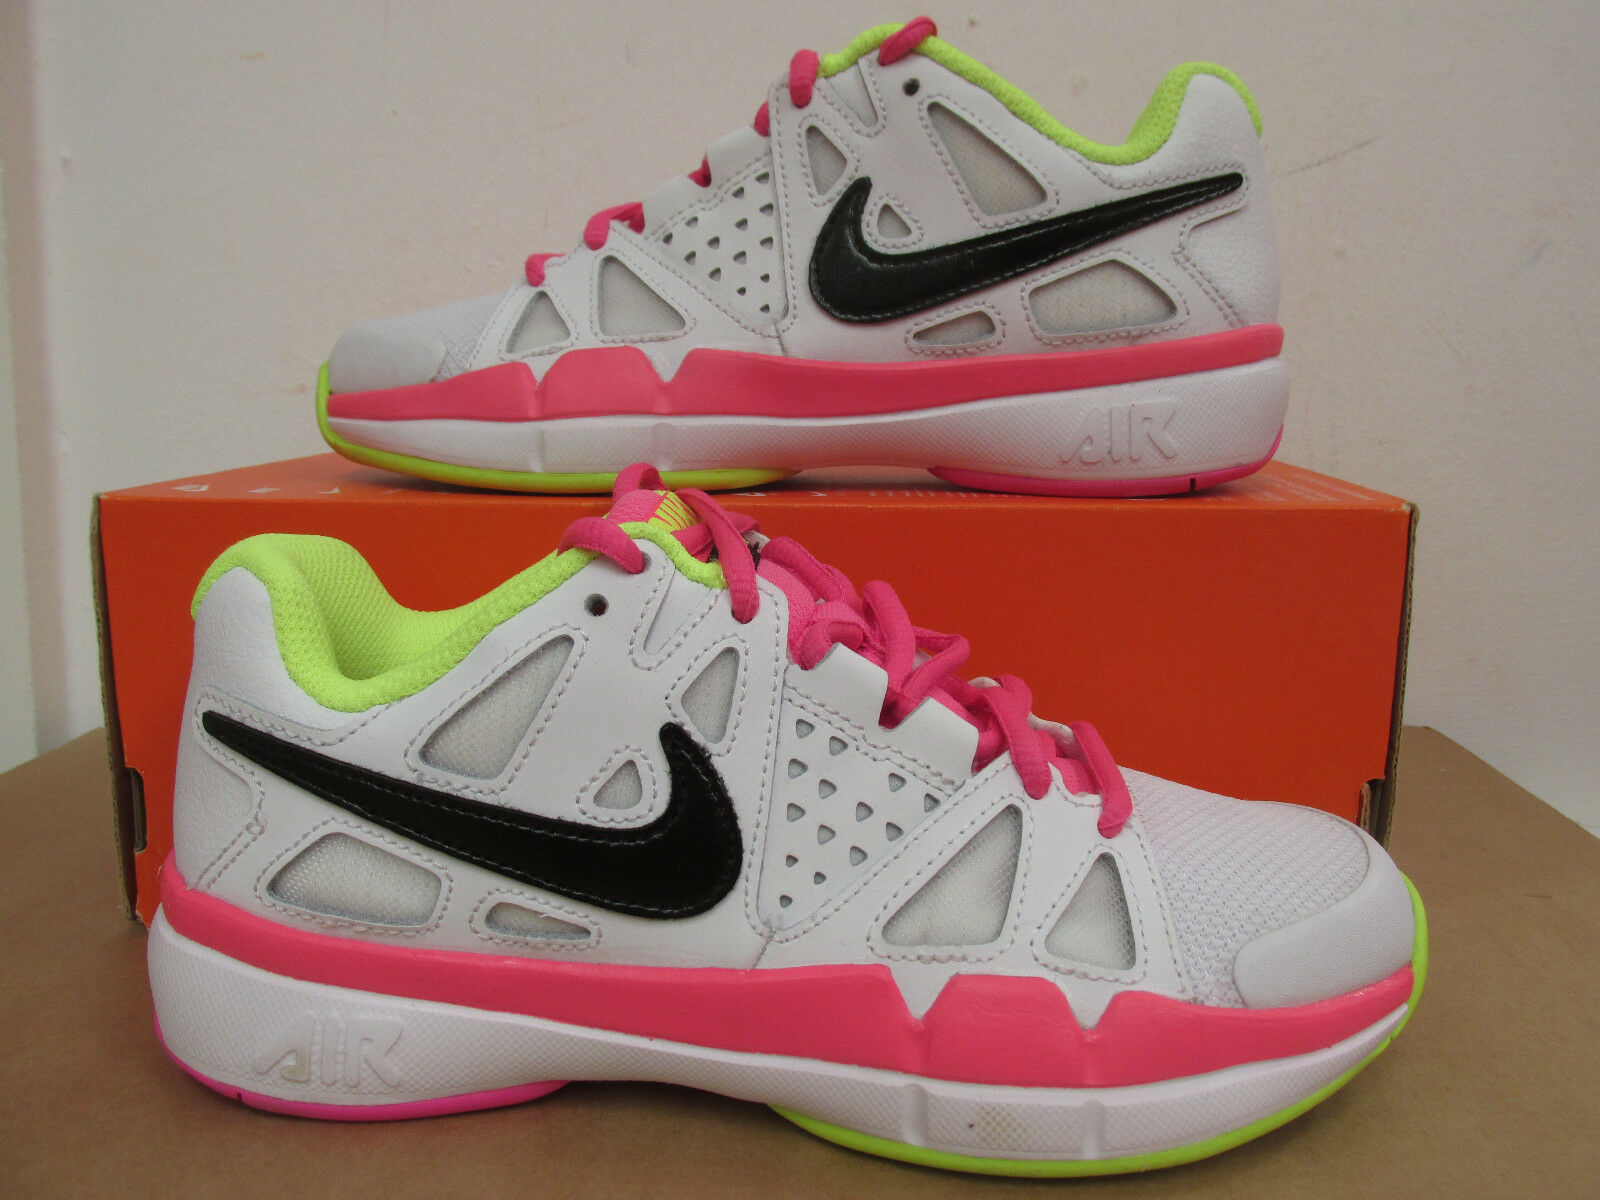 Nike Aire Vapor Ventaja Cly Mujer Tenis Zapatos 599364 107 Zapatillas The latest discount shoes for men and women